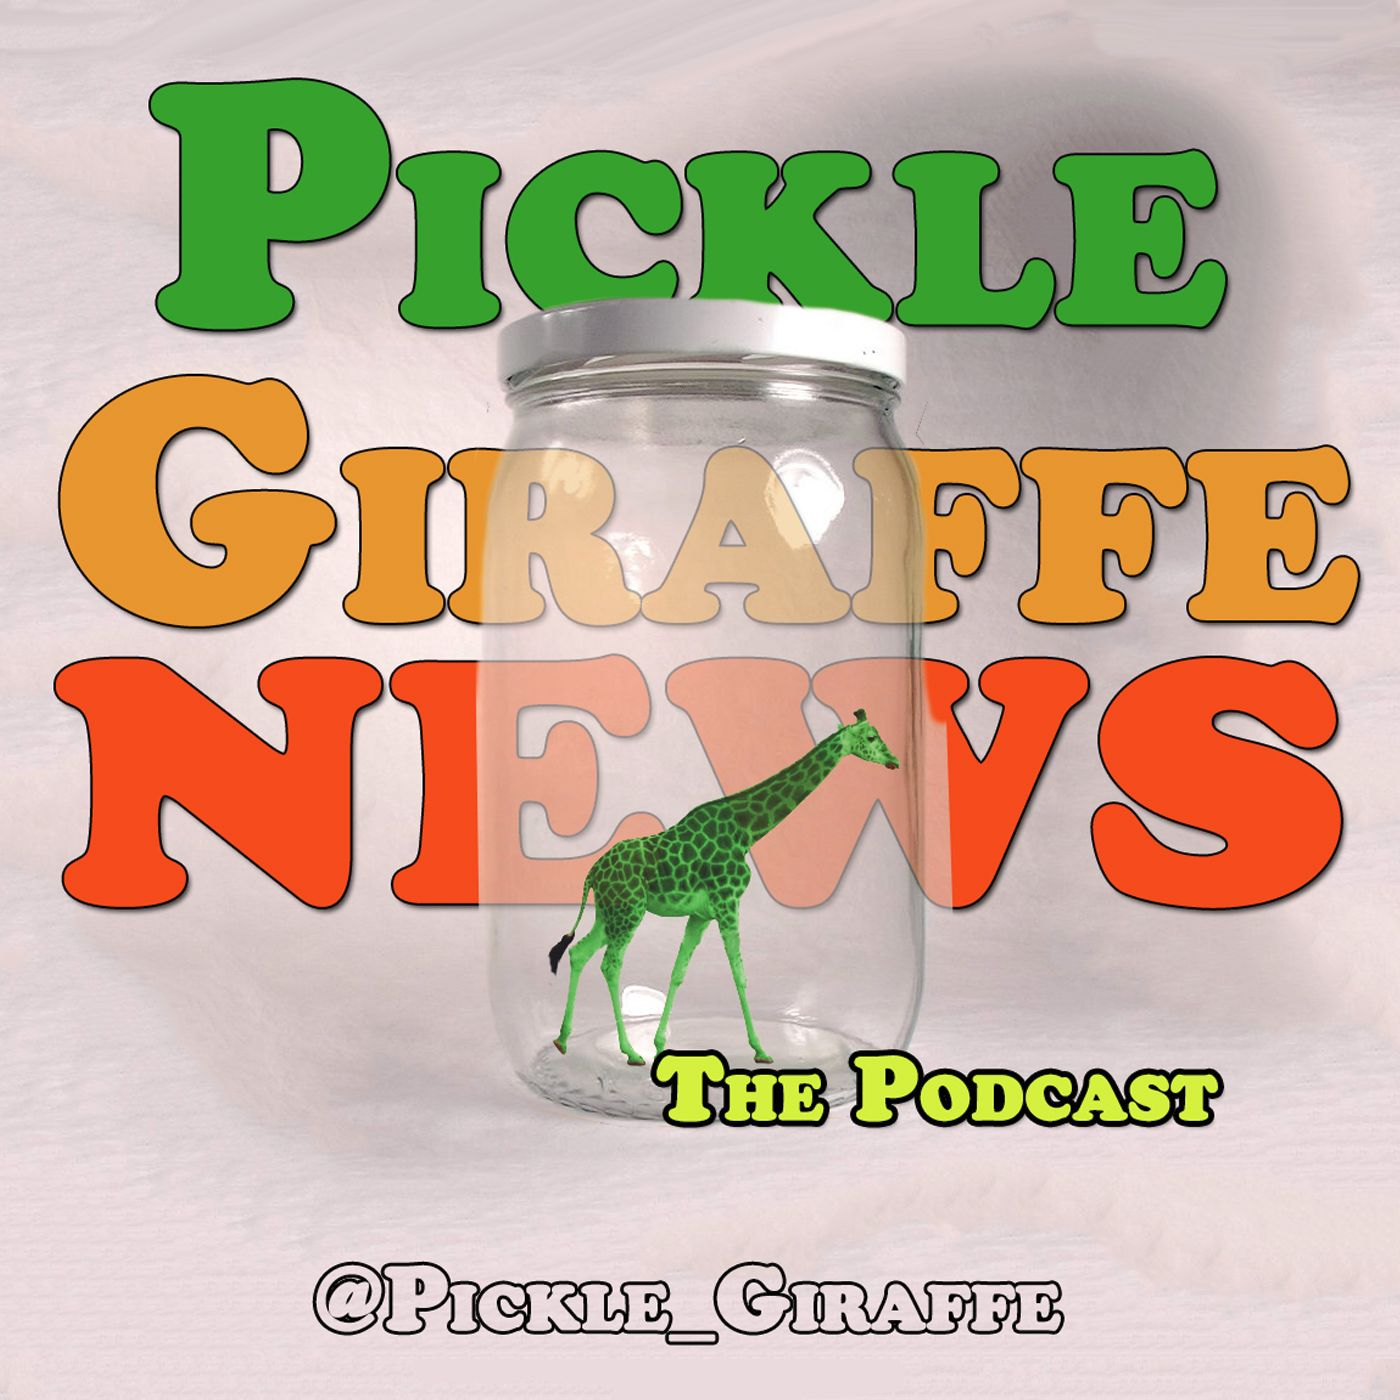 Pickle Giraffe Newscast